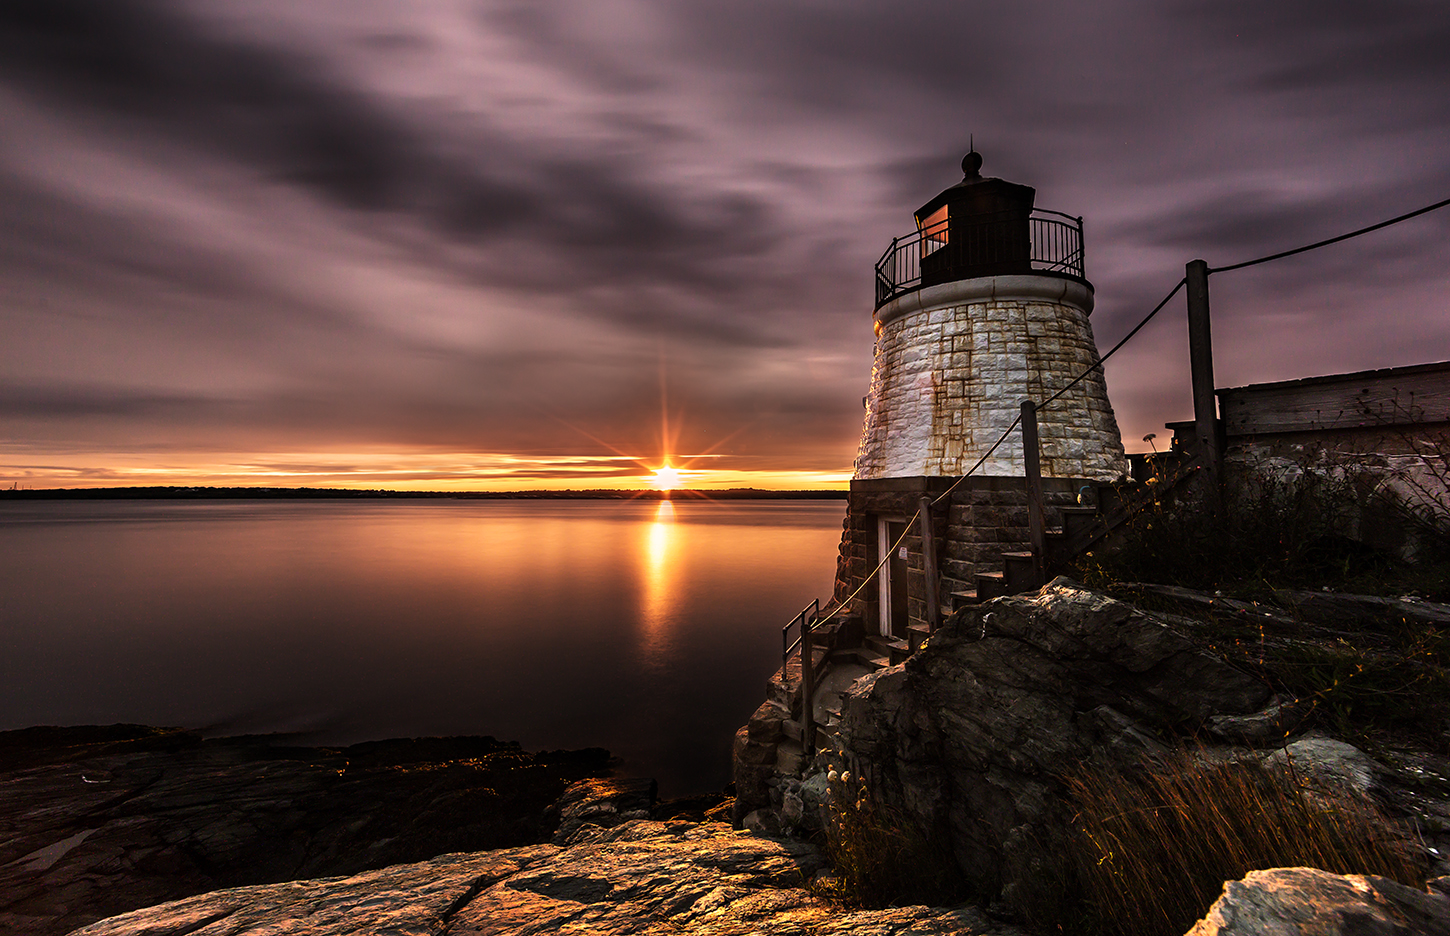 Rhode Island Archives Edward Reese Photography - Long exposure photographs capture entire day sunrise sunset